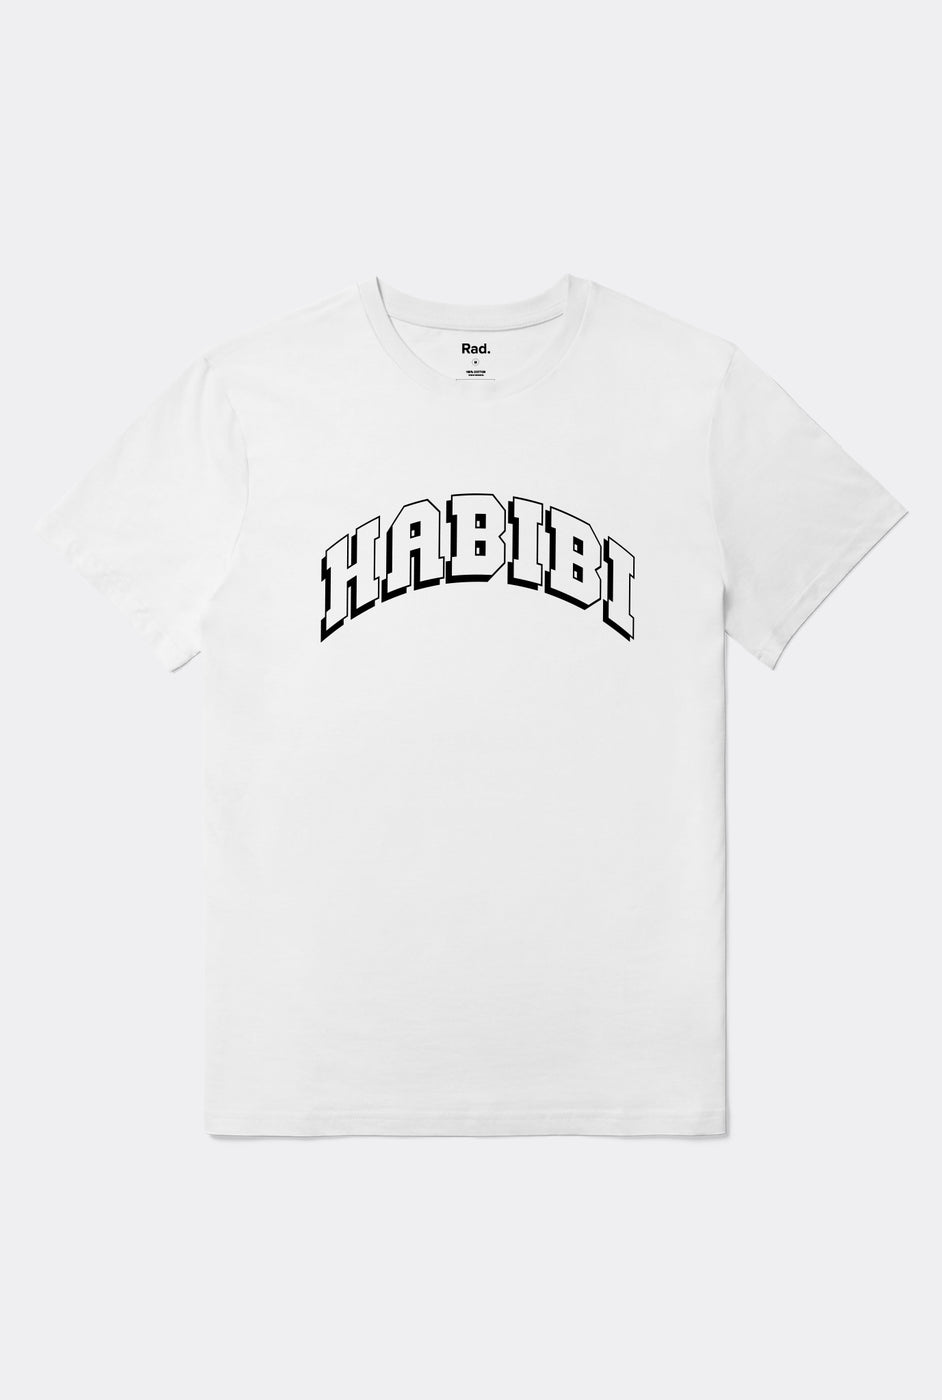 T-Shirt S/S White Graphic Habibi